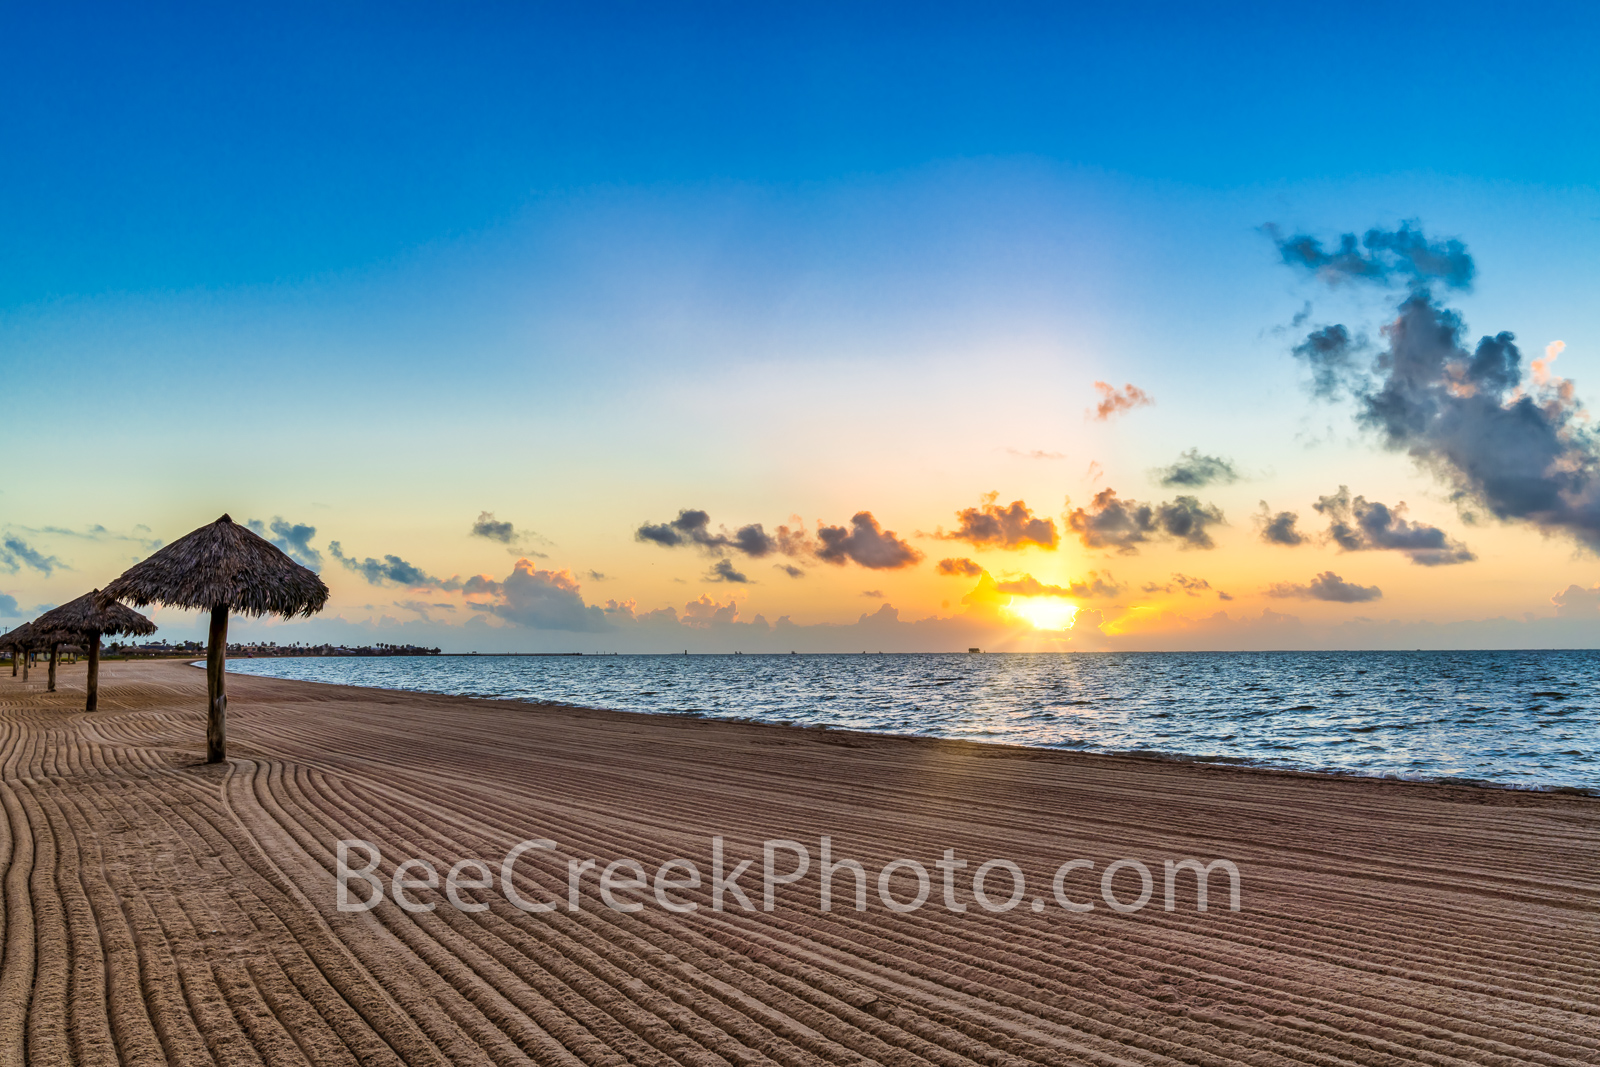 Rockport Texas Beach Sunrise Glow - Love the Rockport Beach park located along the gulf of mexico with it freshly combed beach...